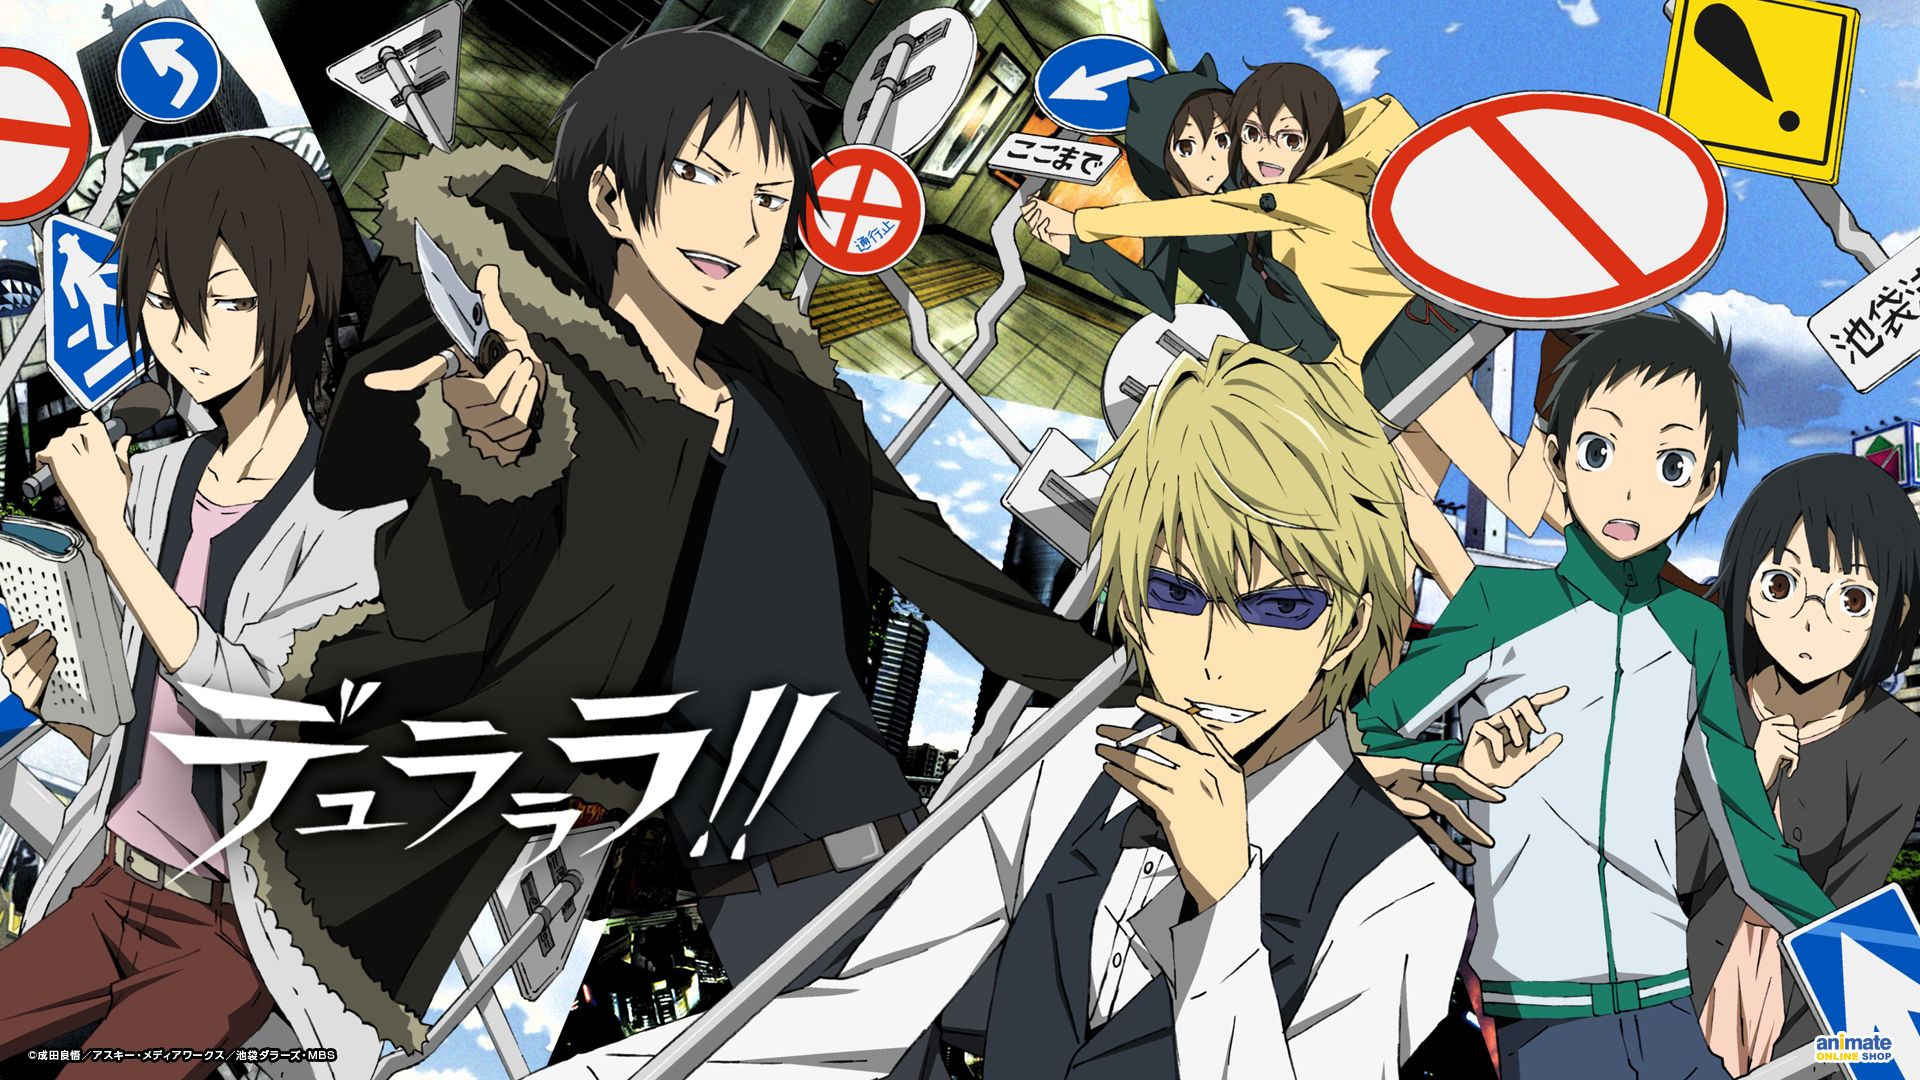 Anime Durarara Wallpaper Durarara Anime Durarara Wallpaper